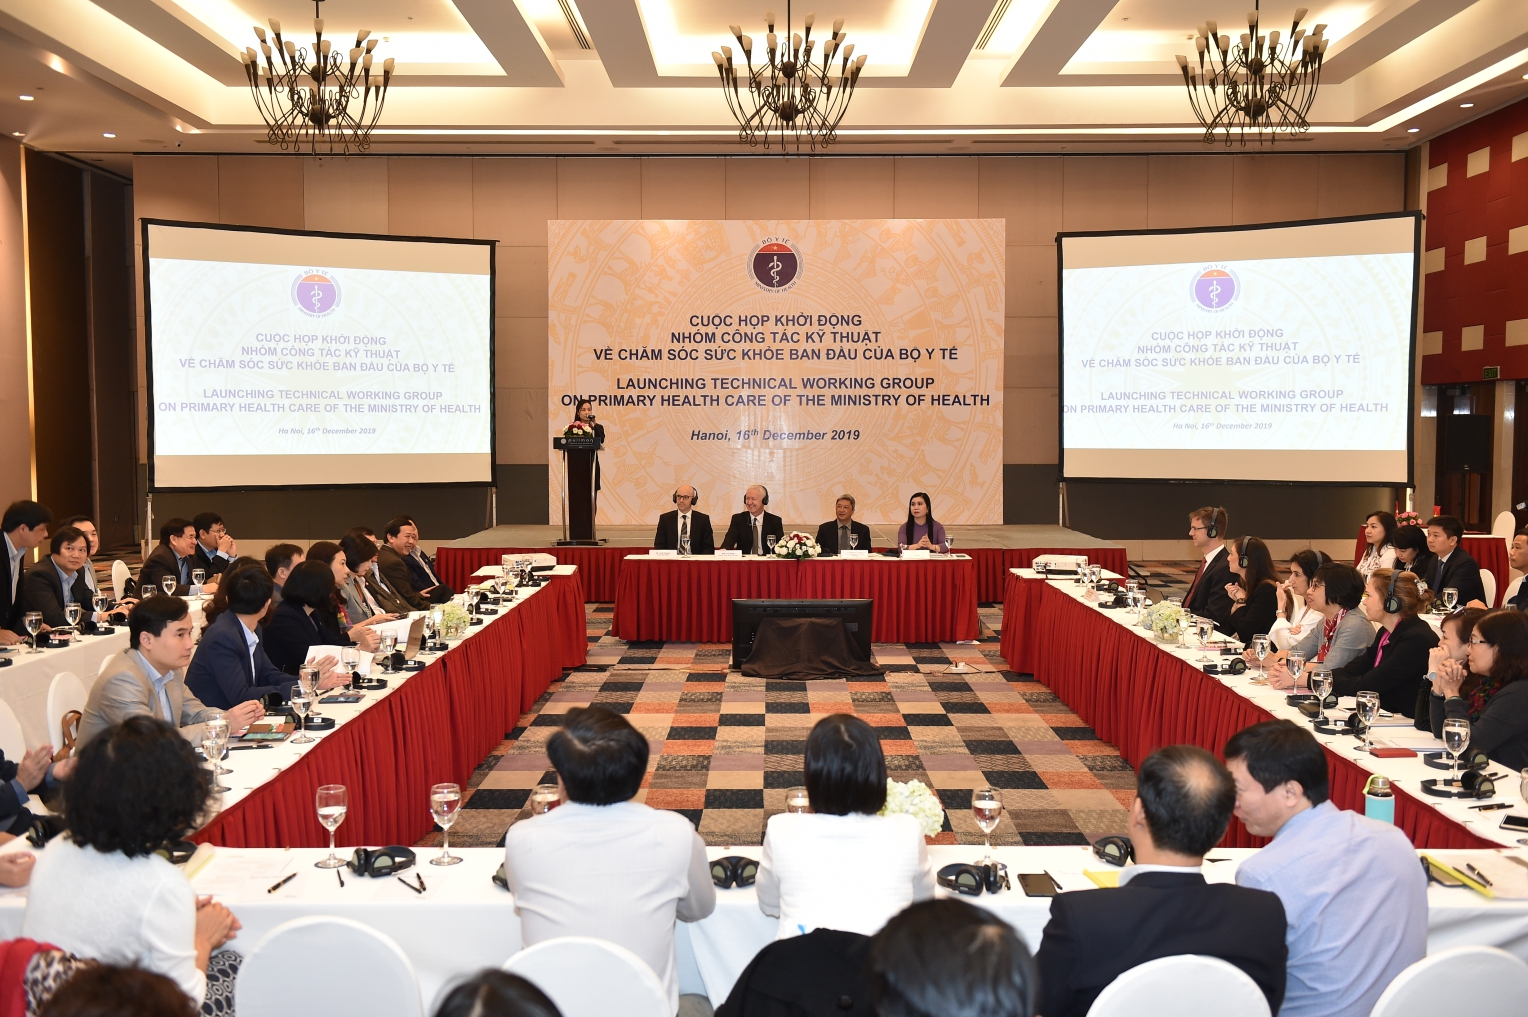 The conference ended with new hopes of a better healthcare system for Vietnamese